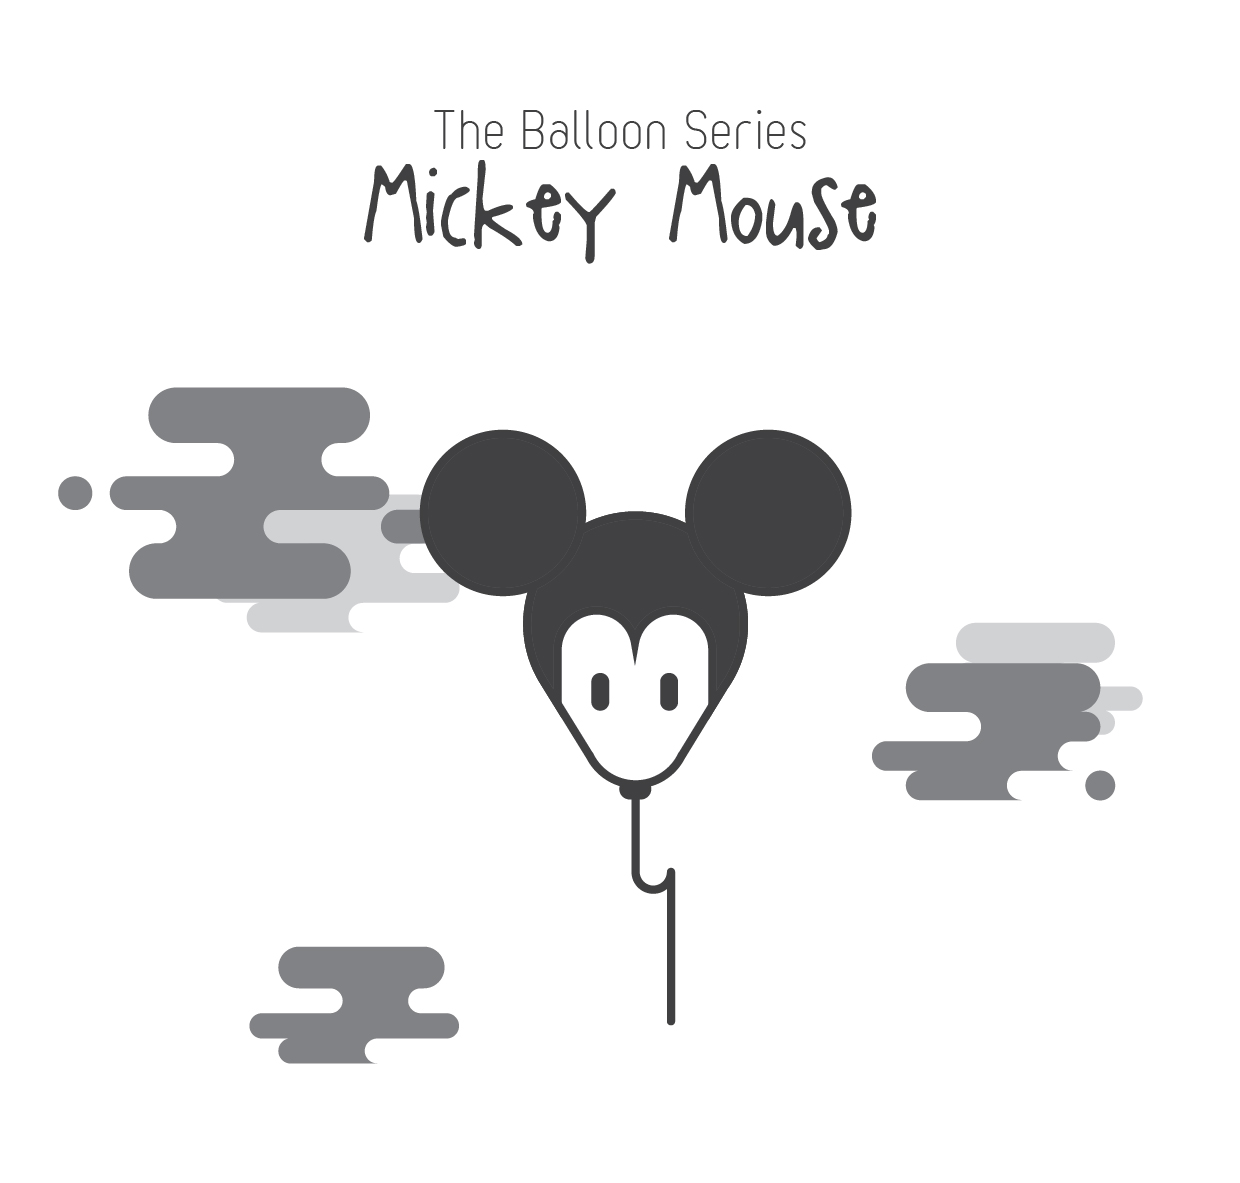 The Balloon Series - Mickey Mouse